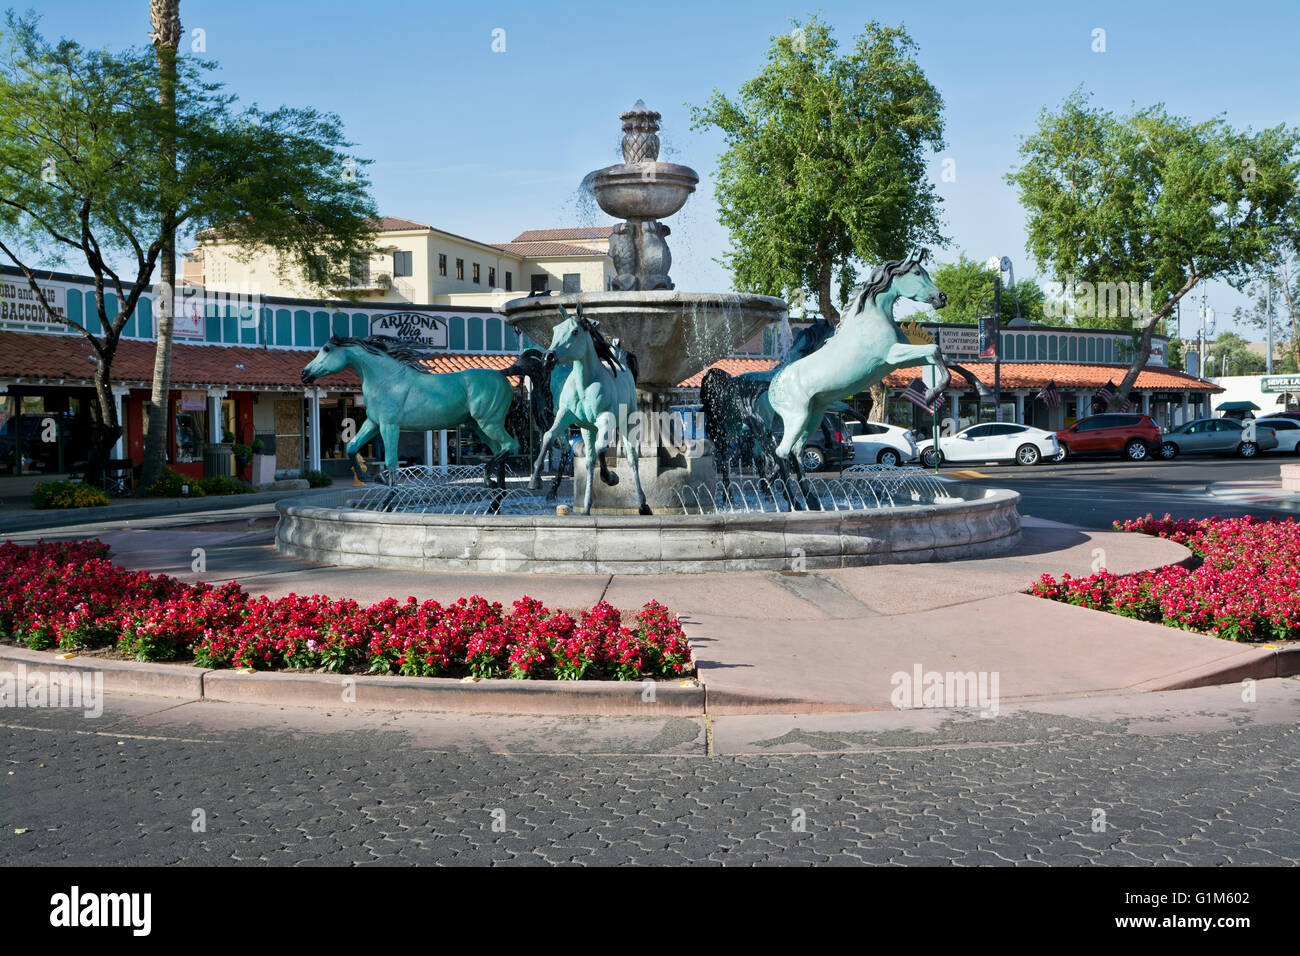 Water fountain with statues of Arabian horses in the 5th Avenue shopping area of Scottsdale, Arizona.  Created by Stock Photo